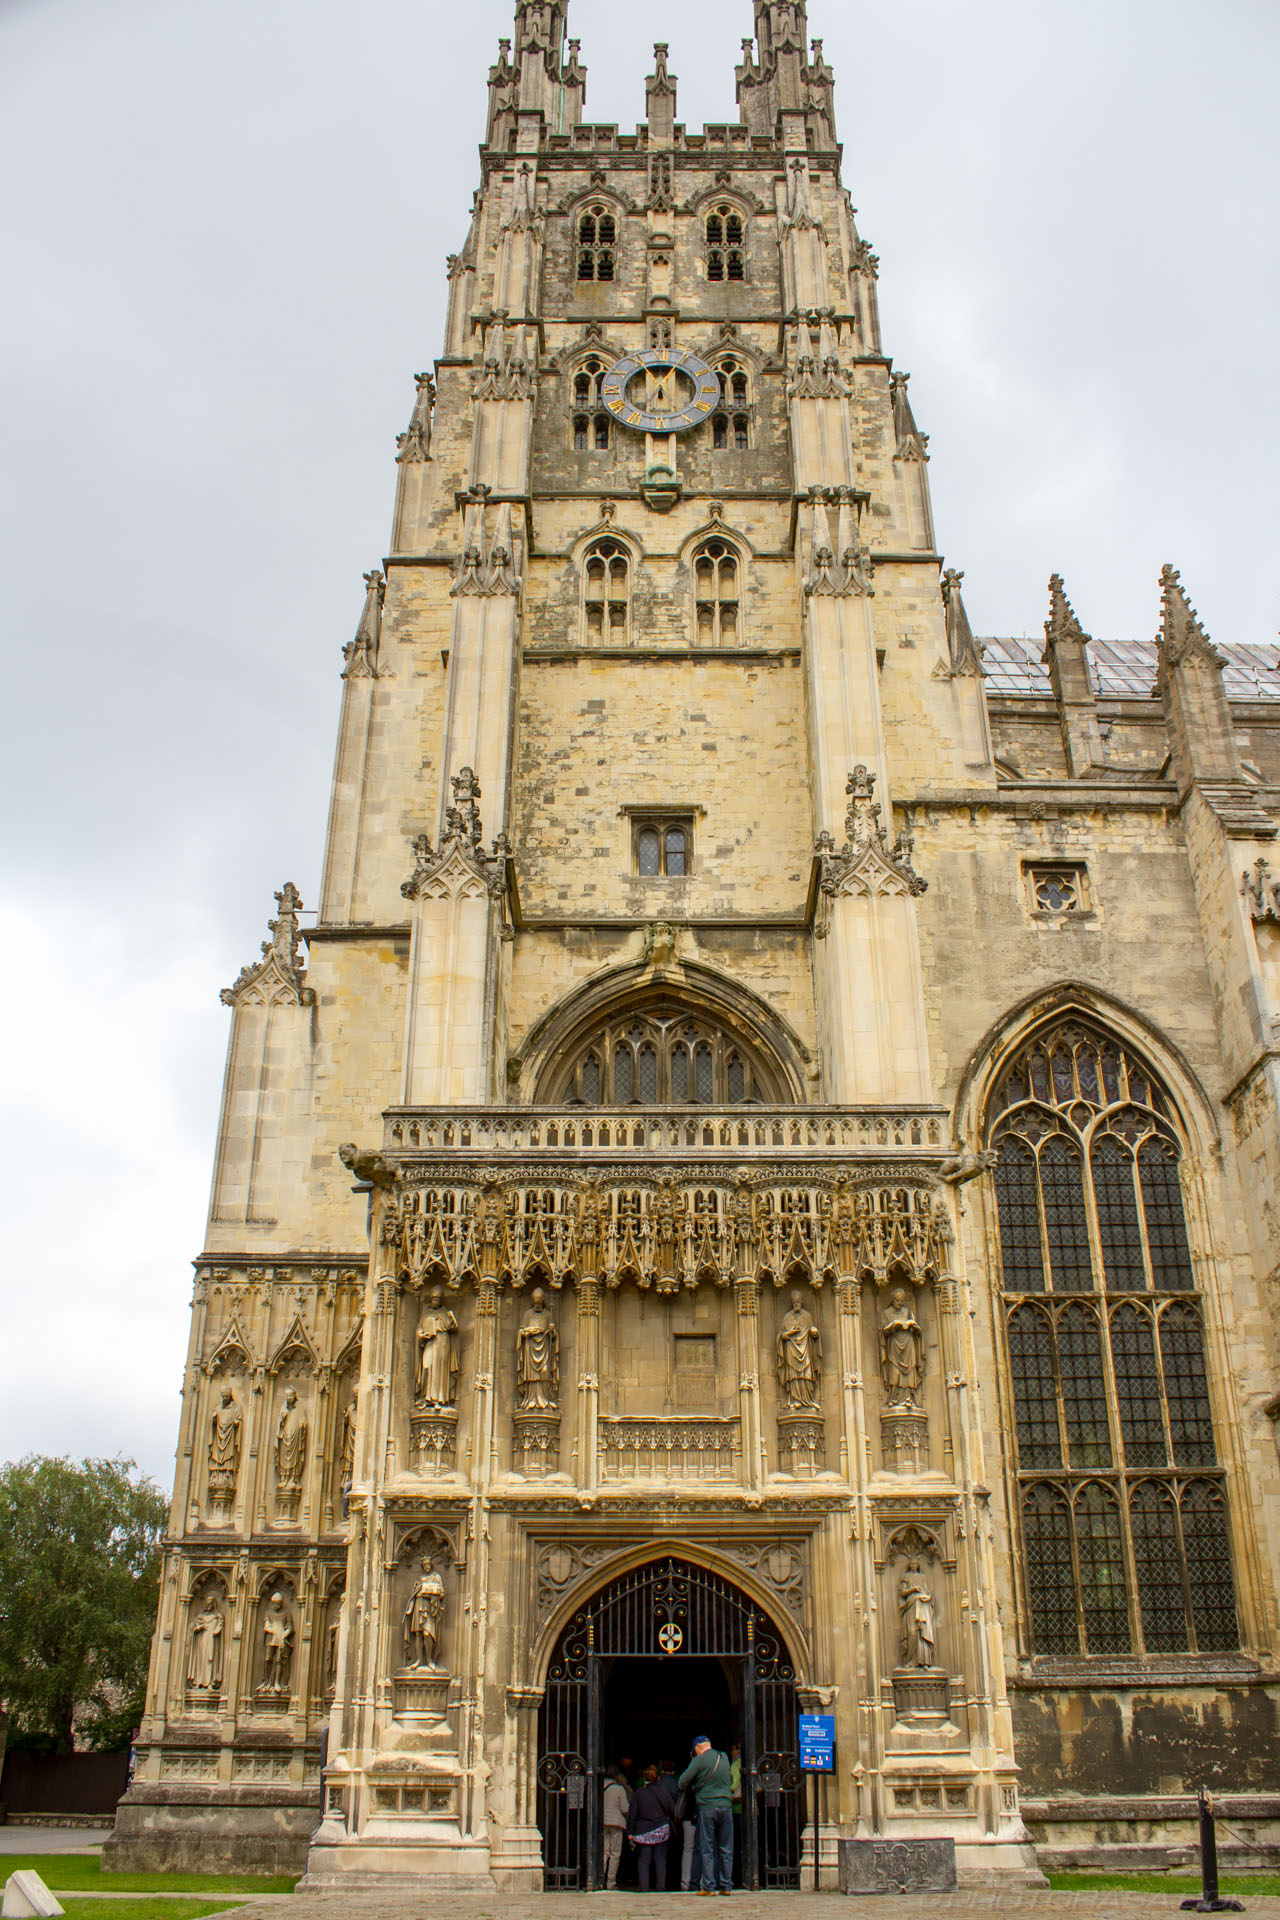 http://photorasa.com/canterbury-cathedral/south-porch-entrance-to-western-tower/